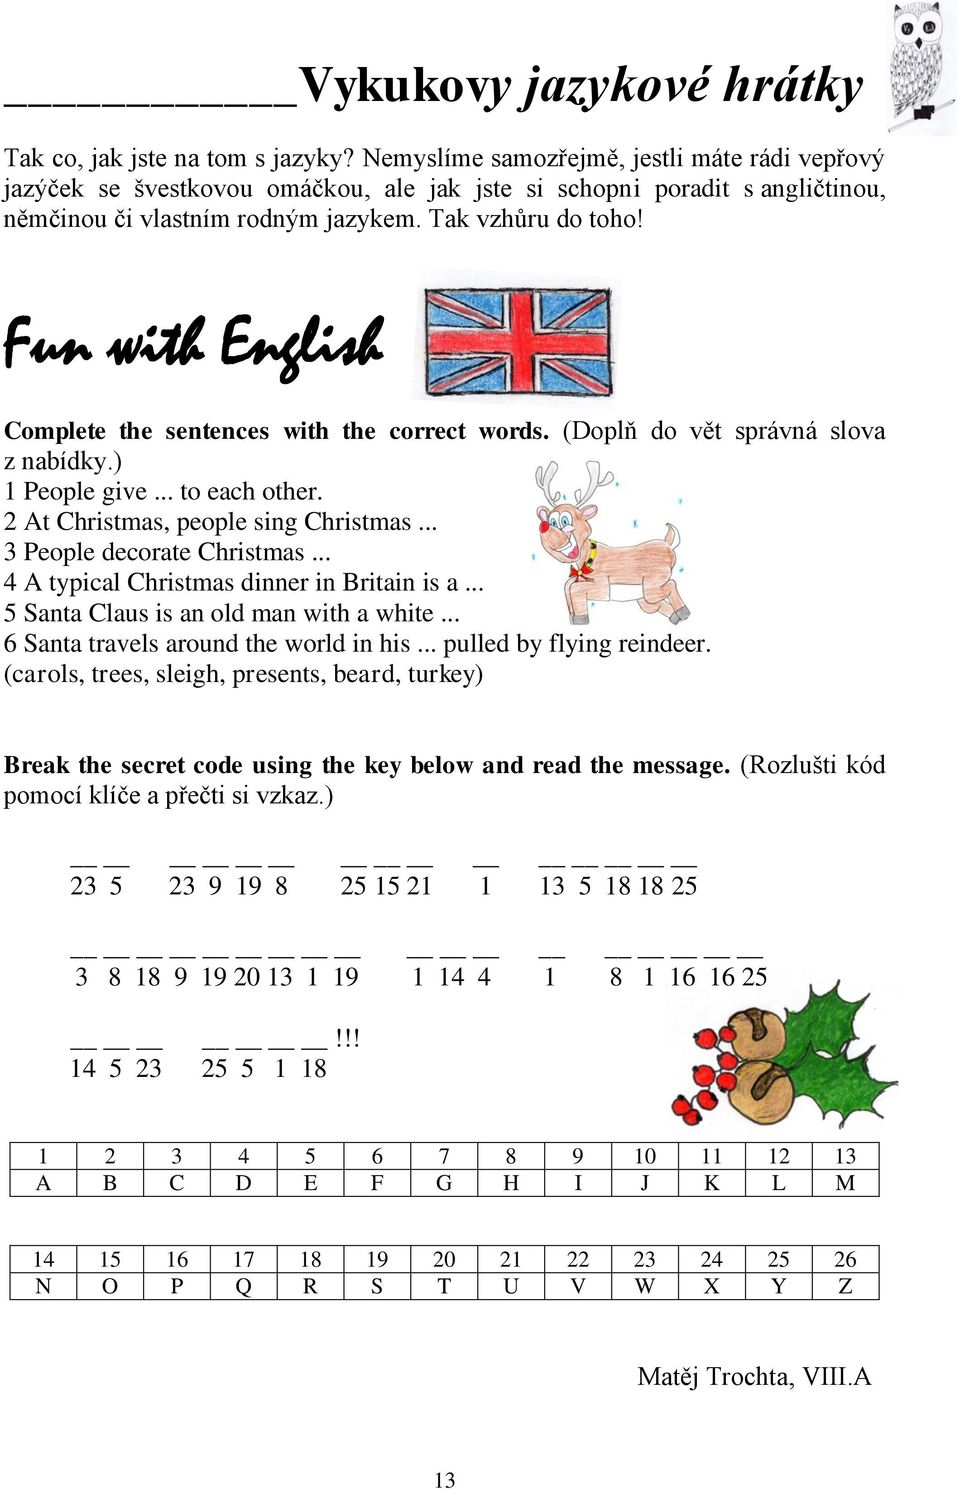 Fun with English Complete the sentences with the correct words. (Doplň do vět správná slova z nabídky.) 1 People give... to each other. 2 At Christmas, people sing Christmas.